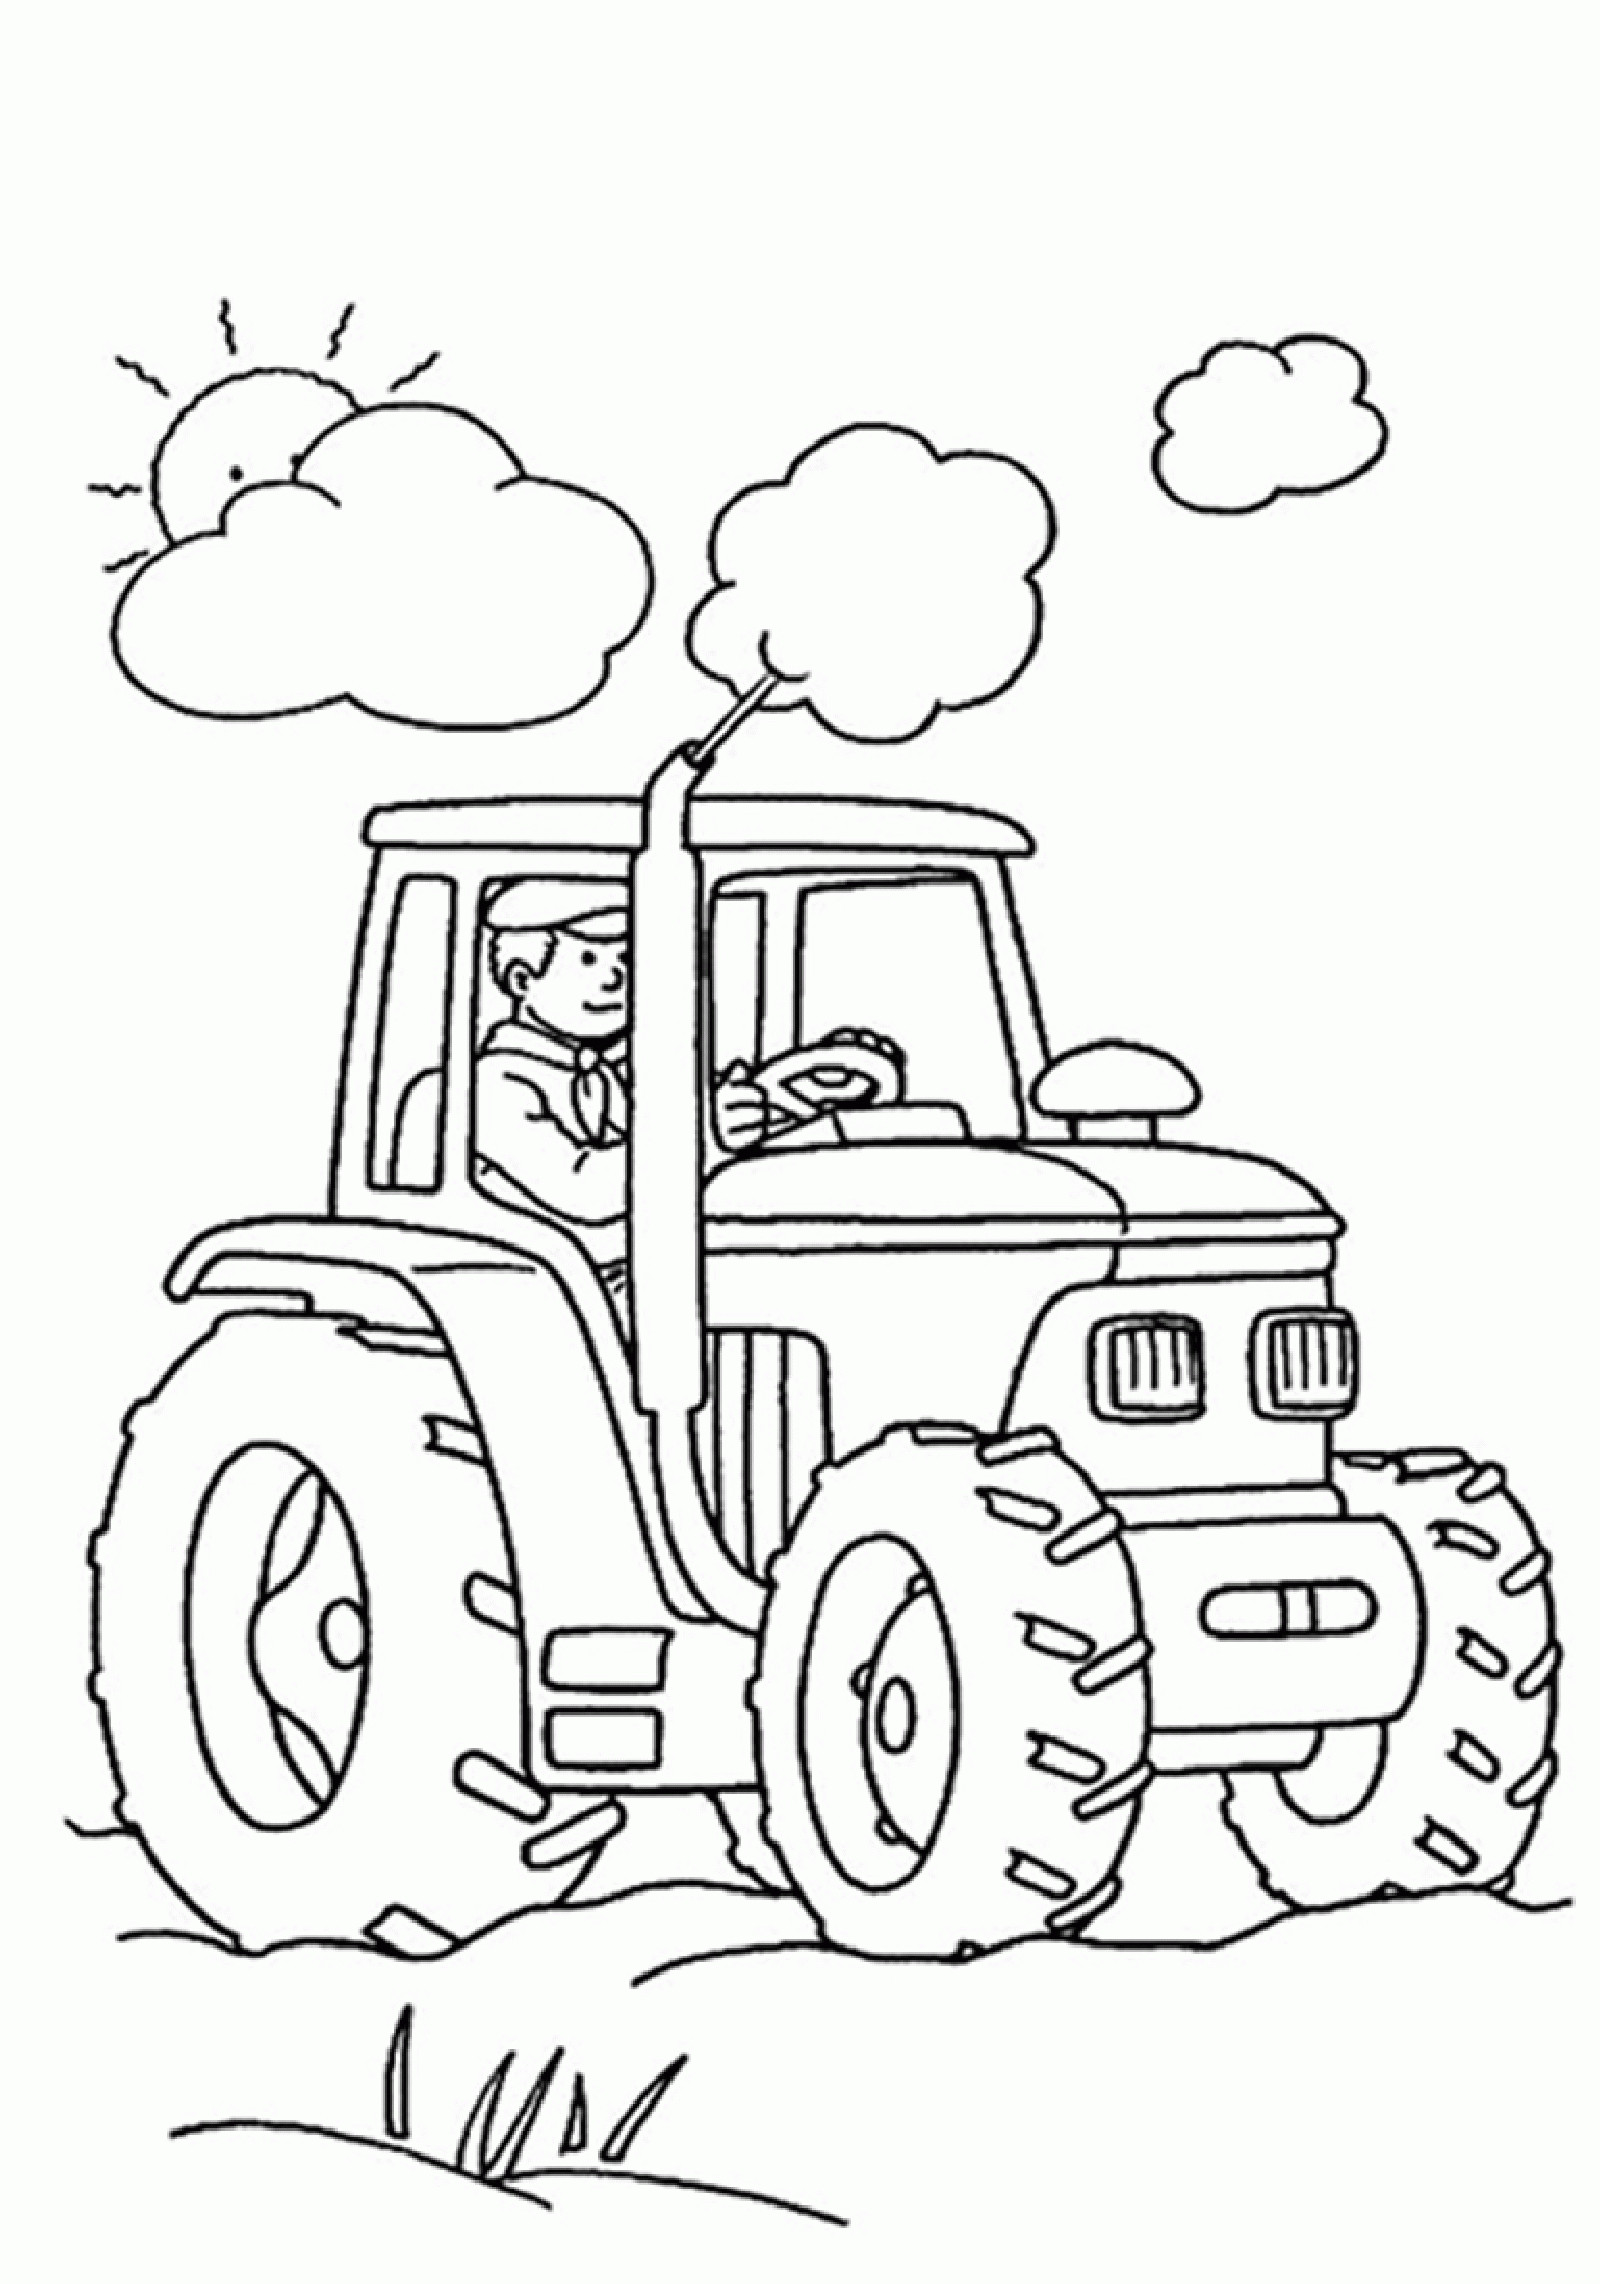 Ausmalbilder John Deere Inspirierend Free Printable Tractor Coloring Pages for Kids Bilder